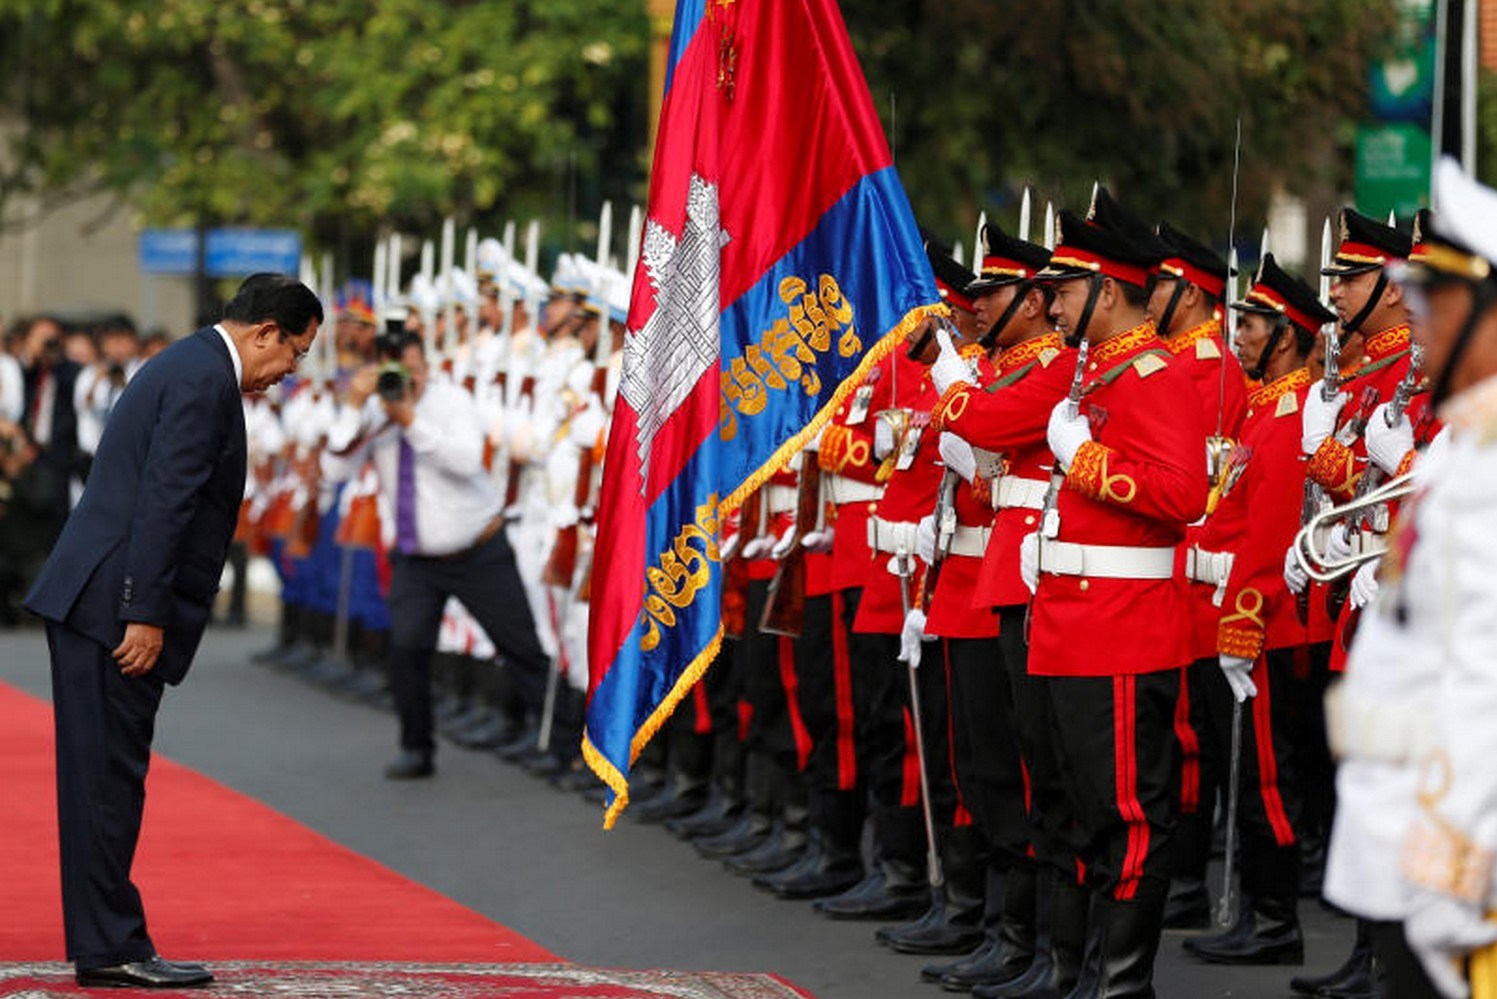 Prime Minister Hun Sen attends celebrations marking the 66th anniversary of Cambodia's independence from France, in central Phnom Penh on Nov 9. (Photo: Reuters)